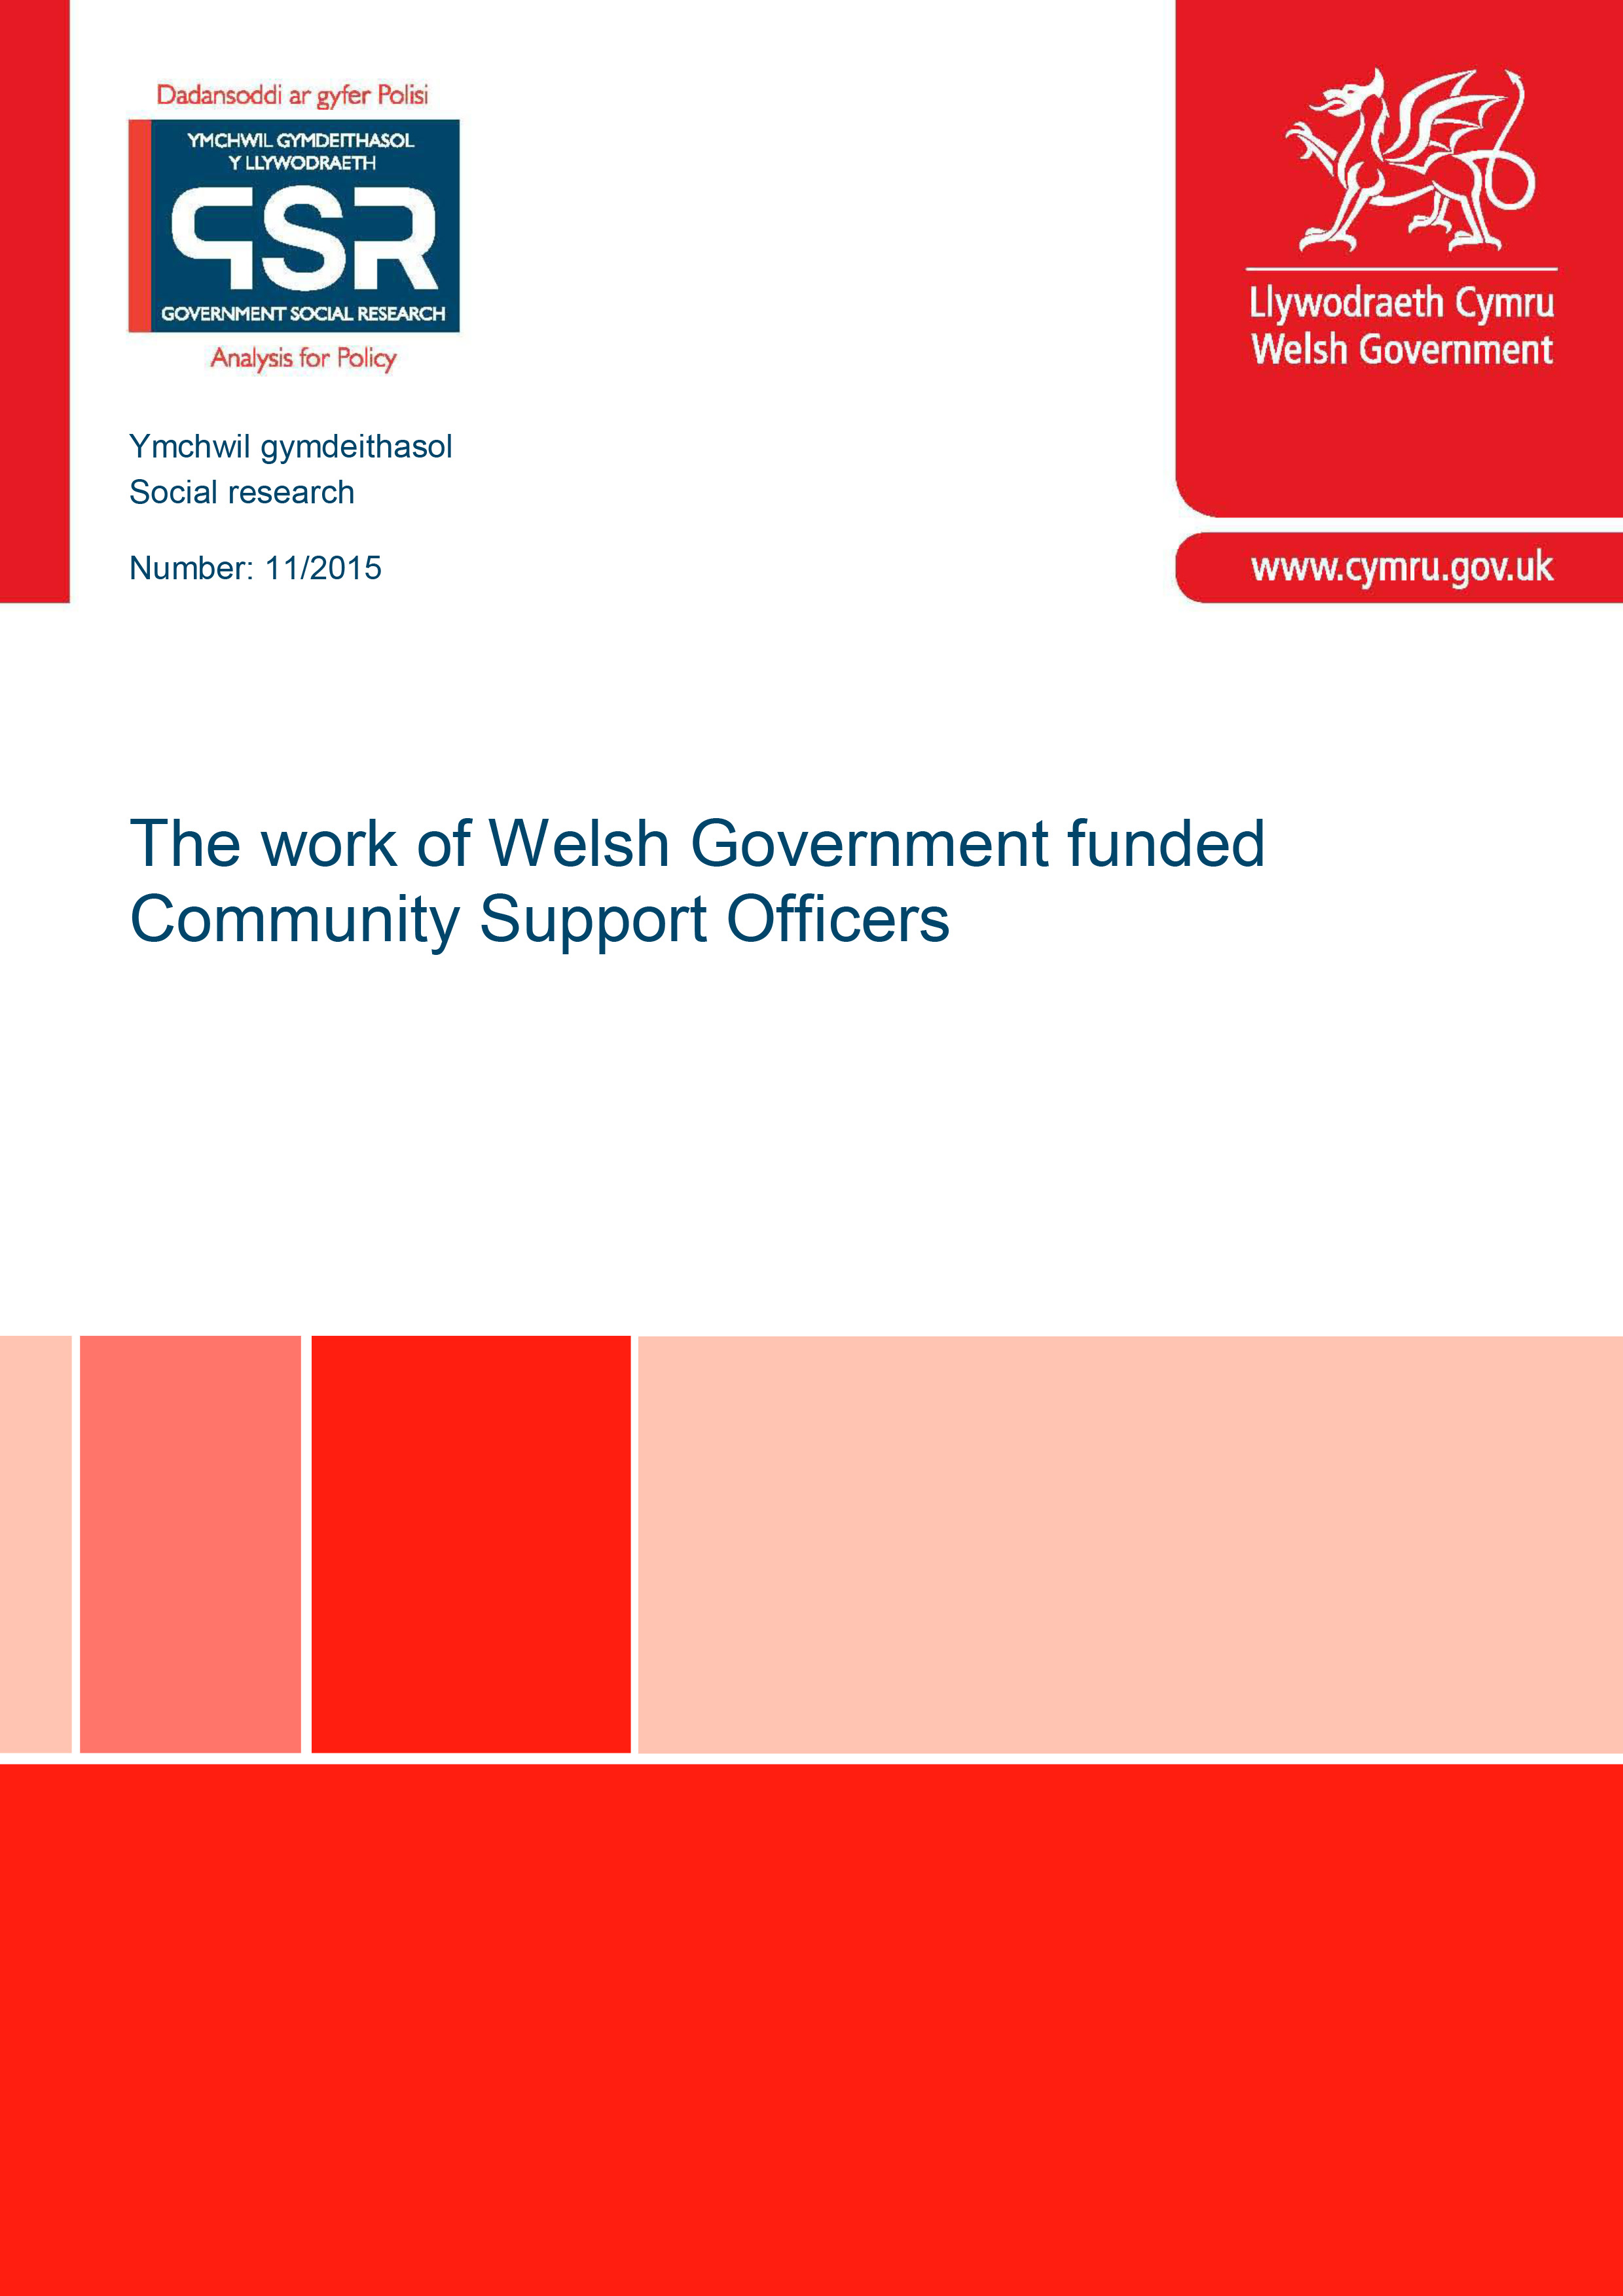 The Work of Welsh Government Funded Community Support Officers